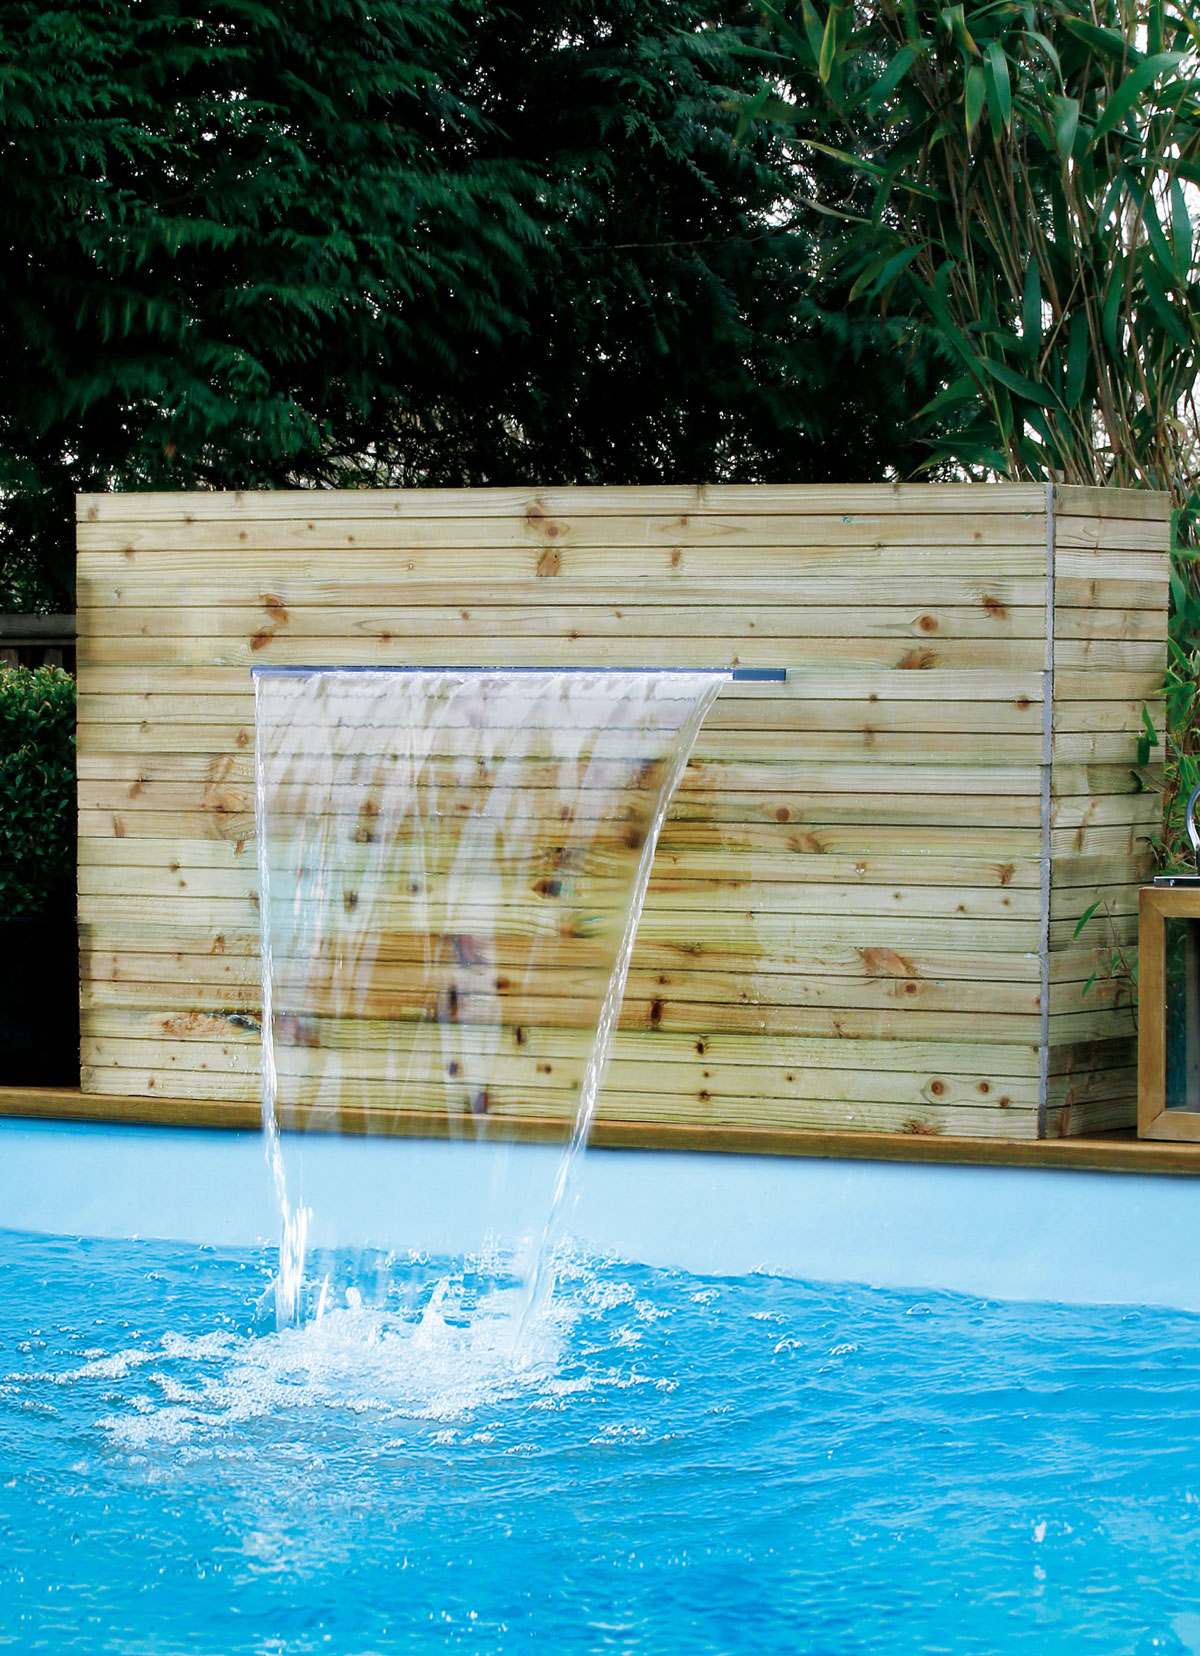 Verrohrung Pool Filteranlage Wand Schwalldusche Quotniagara Quot Mit Led Sunday Pools Onlineshop